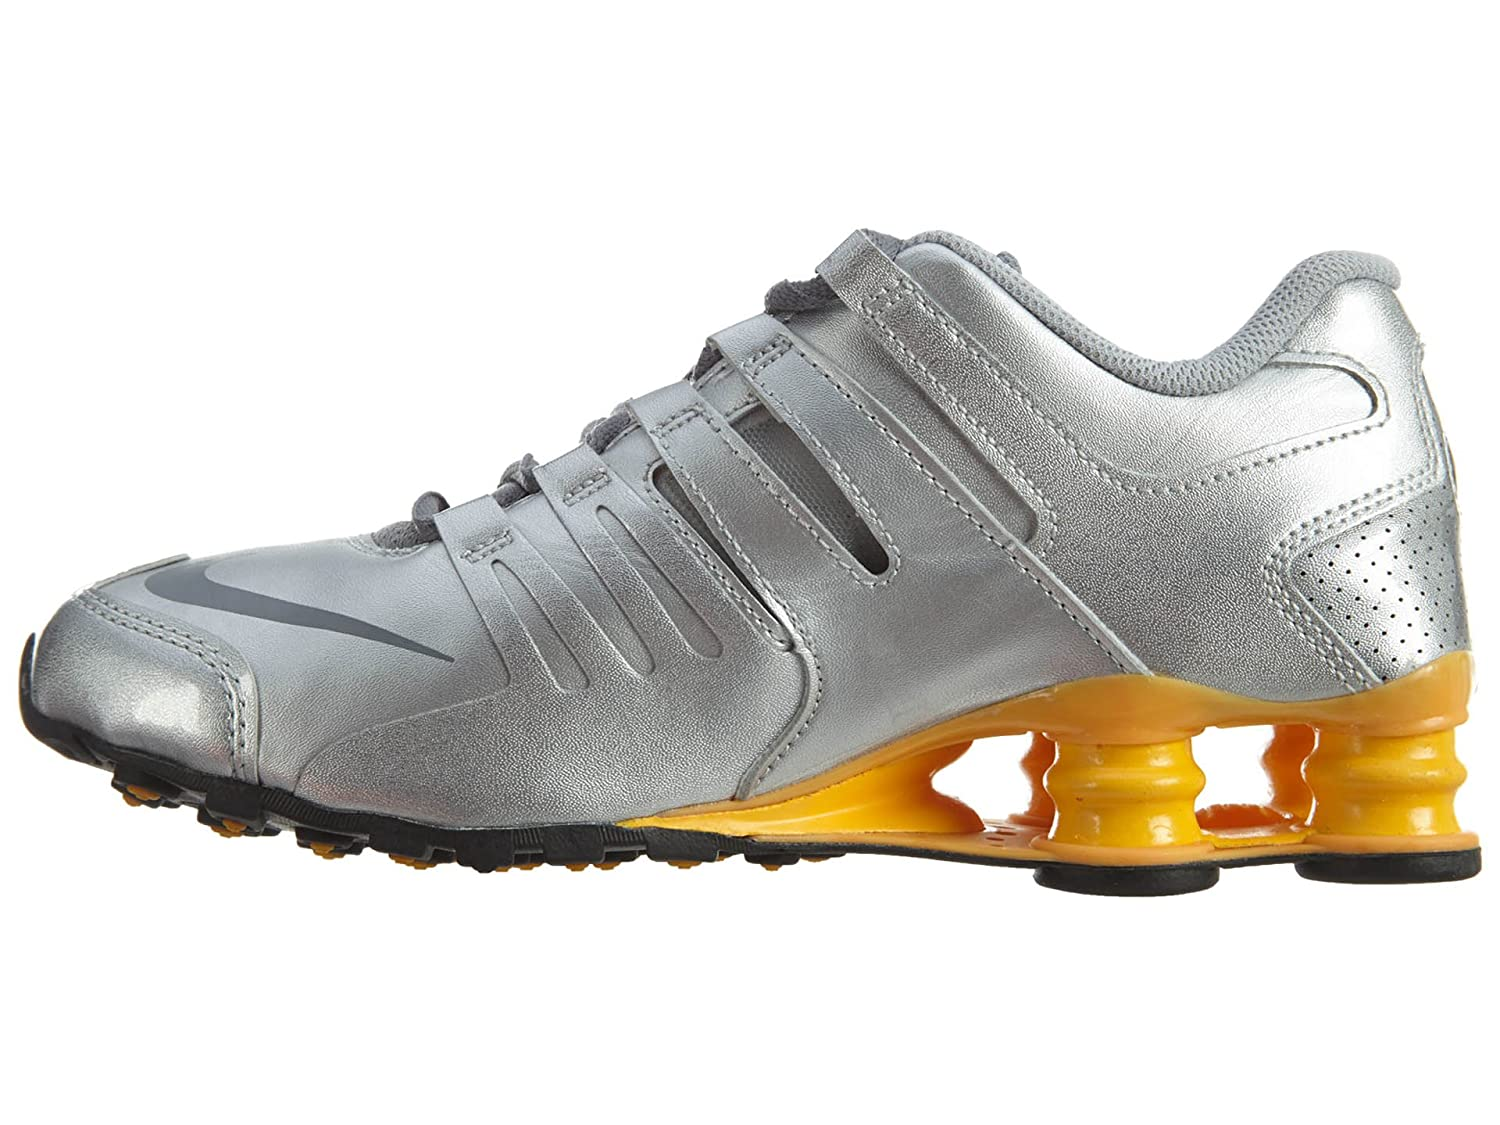 buy online 6b108 9d226 ... good nike shox current womens style 639657 015 size 5.5 m us amazon  shoes handbags d5ae6